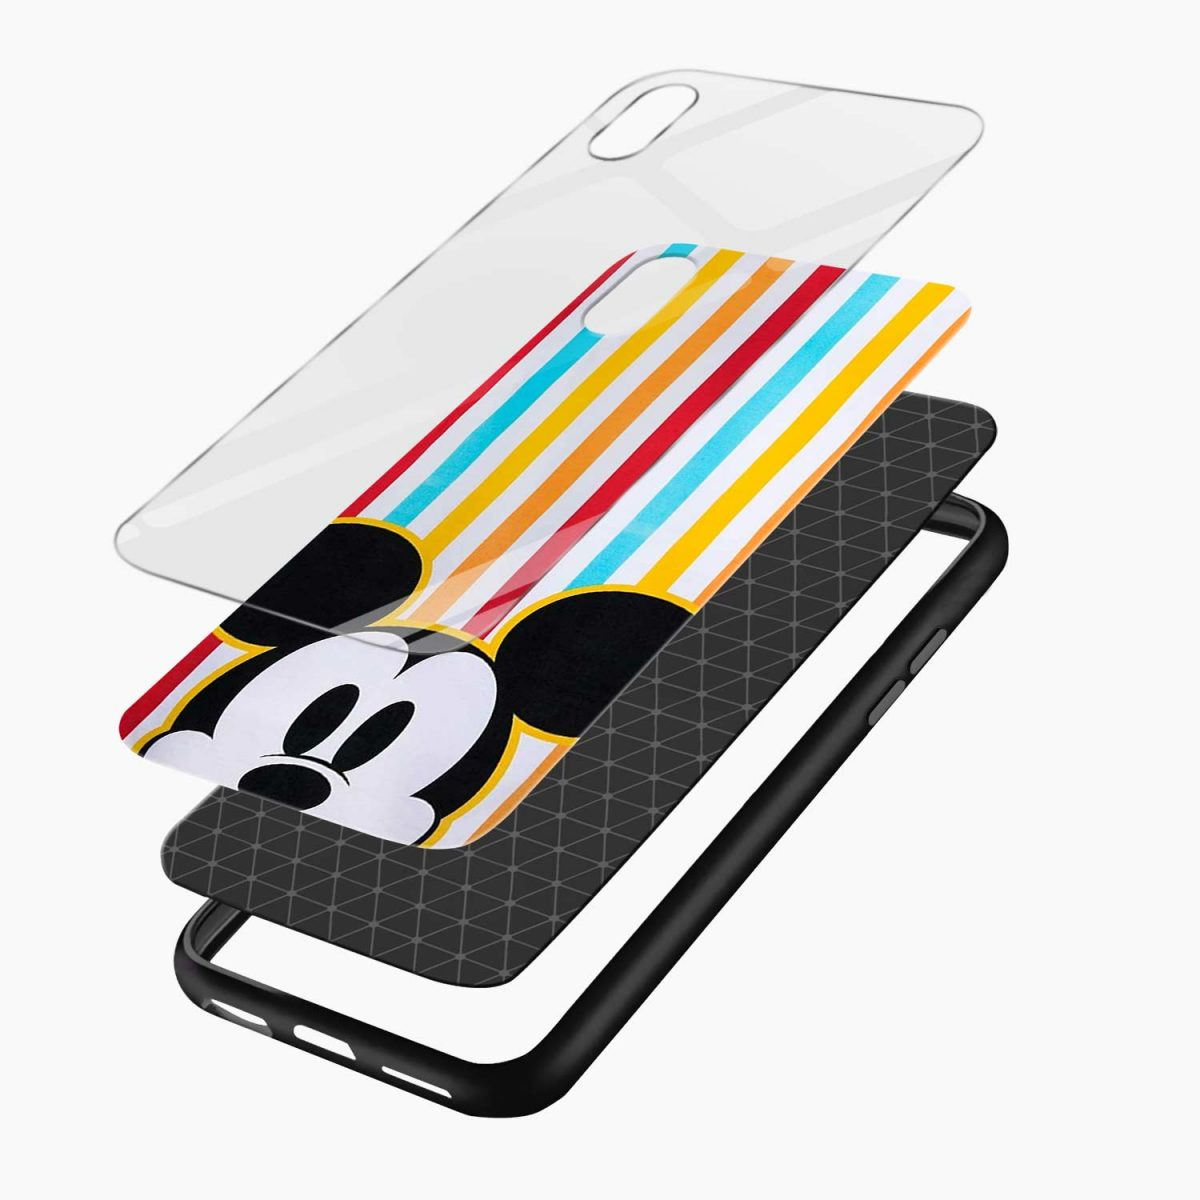 rigid spy mickey mouse apple iphone xr back cover layers view